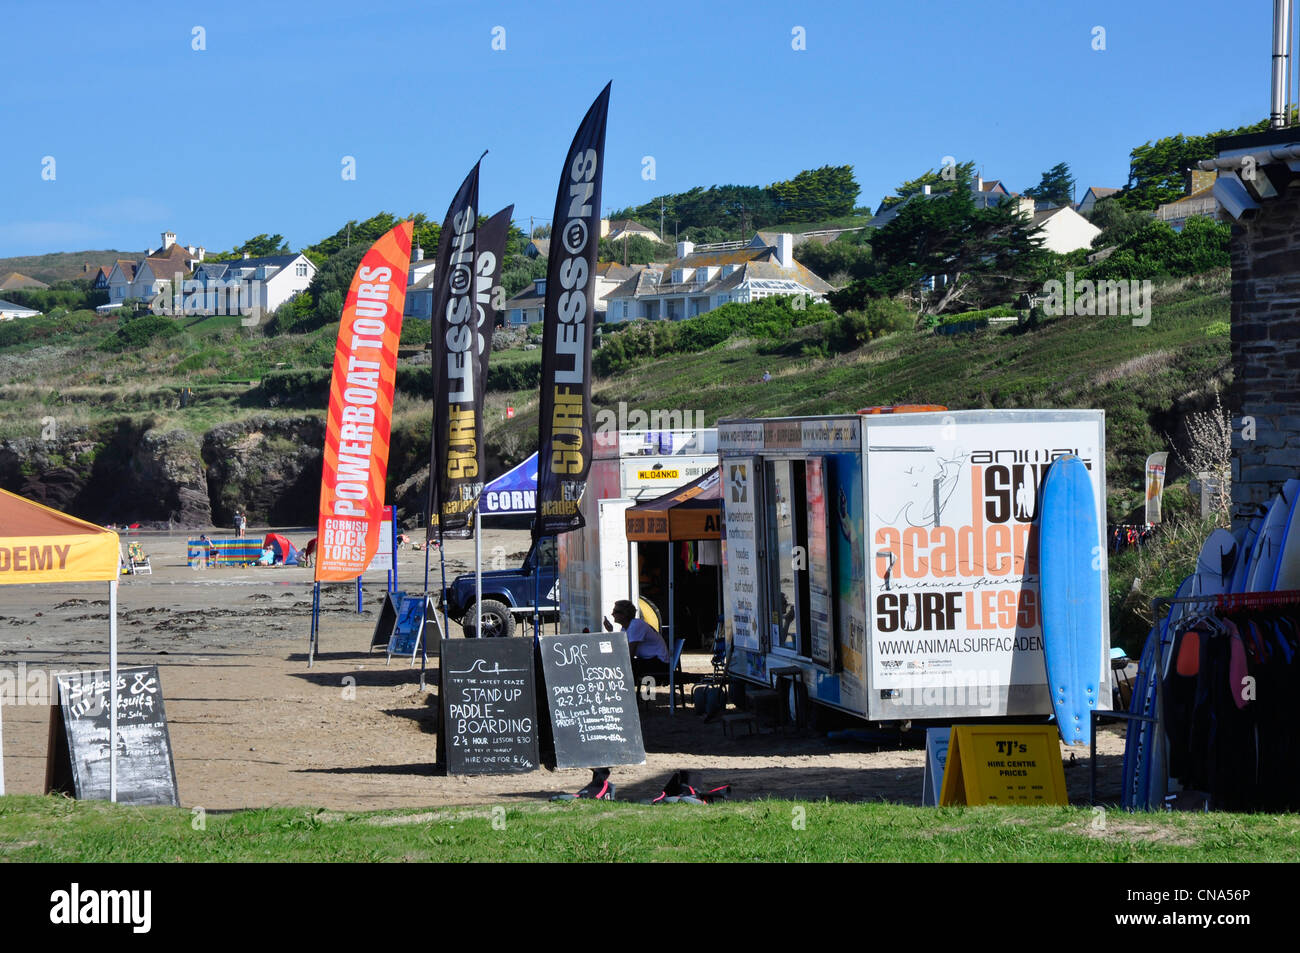 Cornwall - Hayle Bay beach - surf schools waiting for customers - bright summer sunlight - blue sky - Stock Image